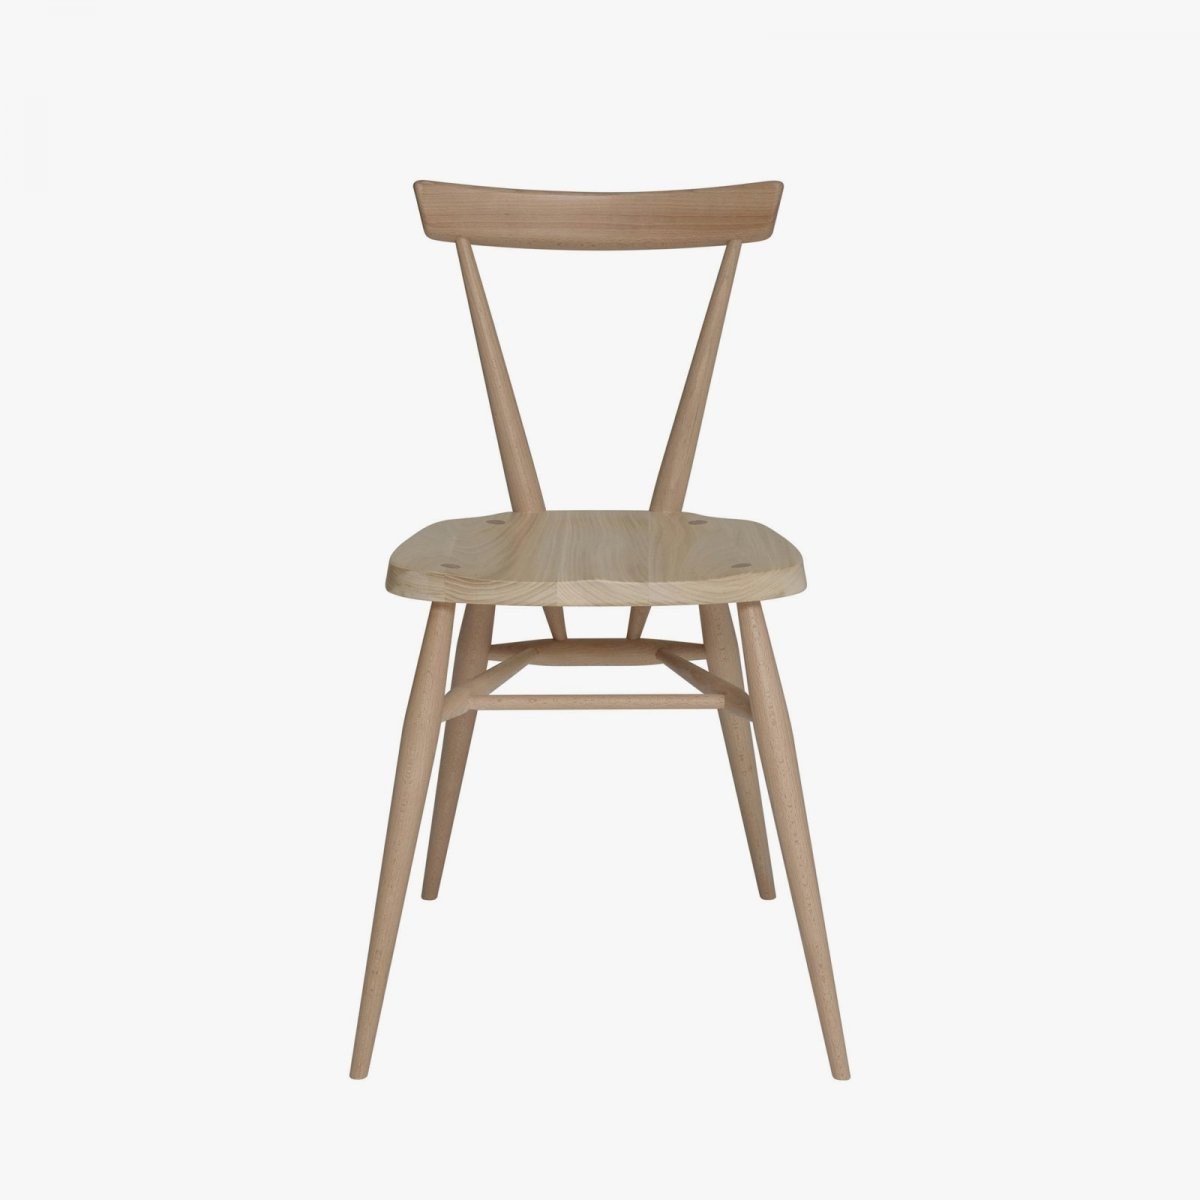 Originals Stacking Chair, front view.